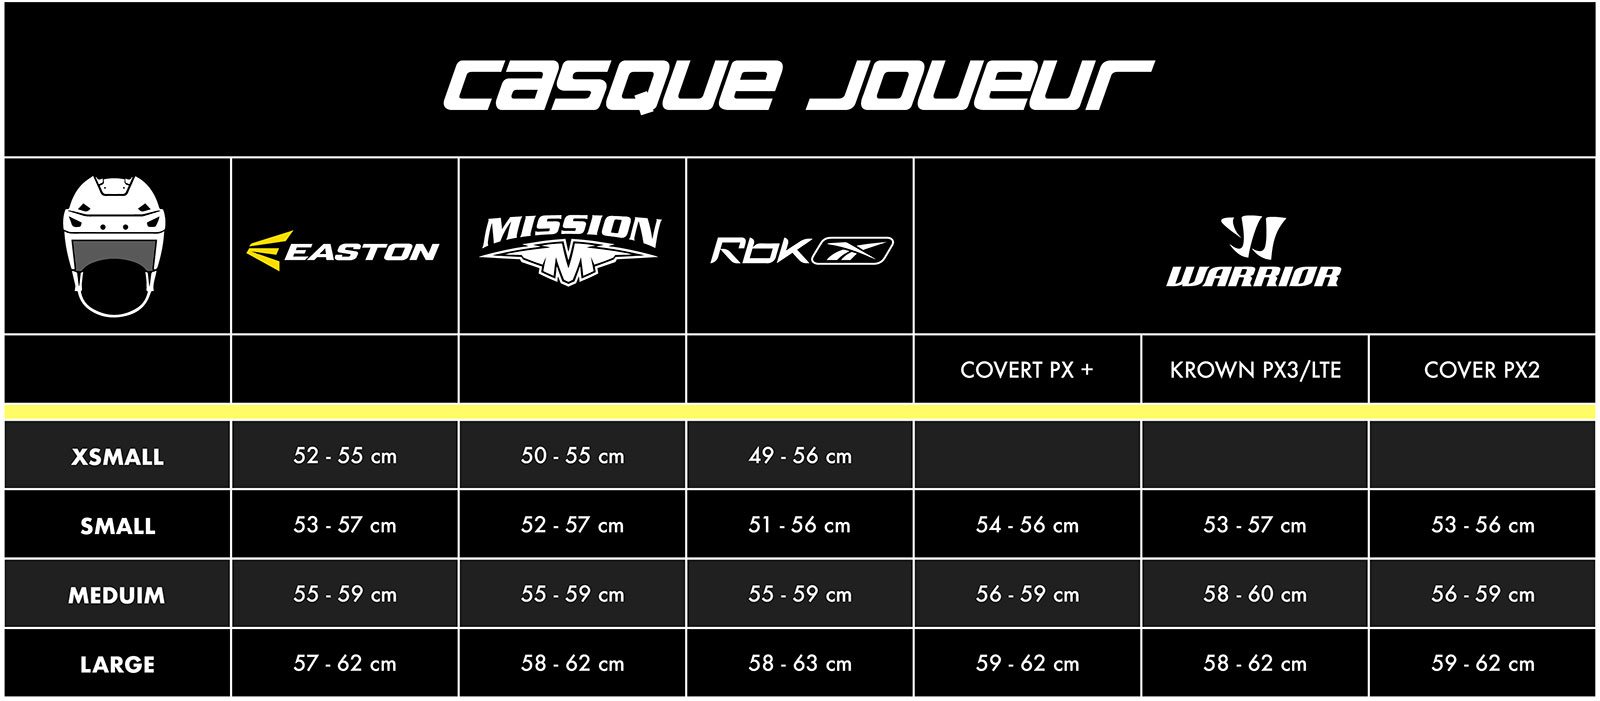 Guide de taille casque Easton Missiion Reebok Warrior hockey Pro Patinage